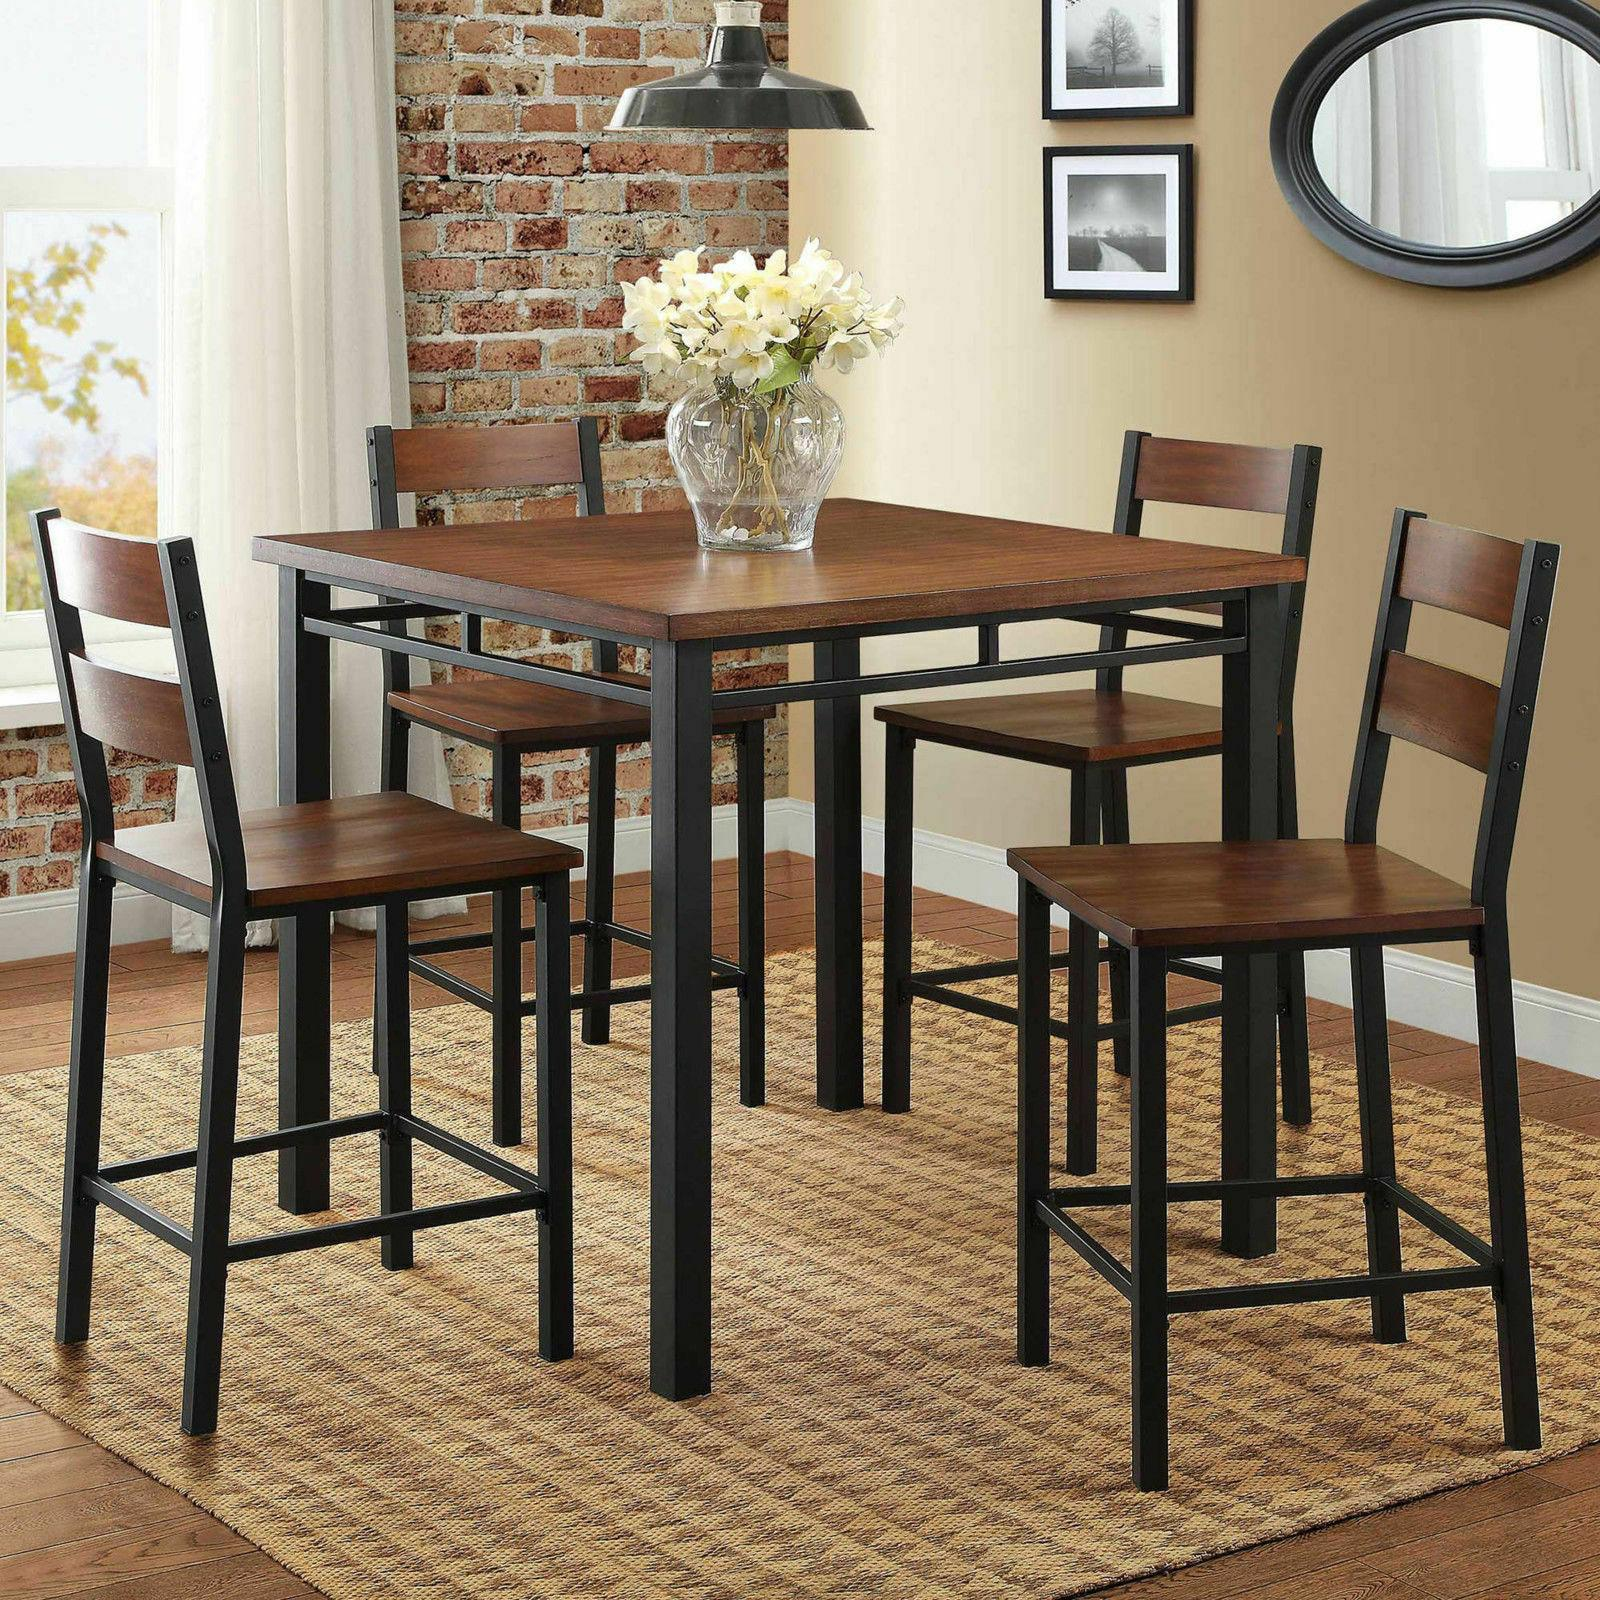 DINING SET COUNTER HEIGHT Table 5-Piece 4 Chairs Metal Vinta